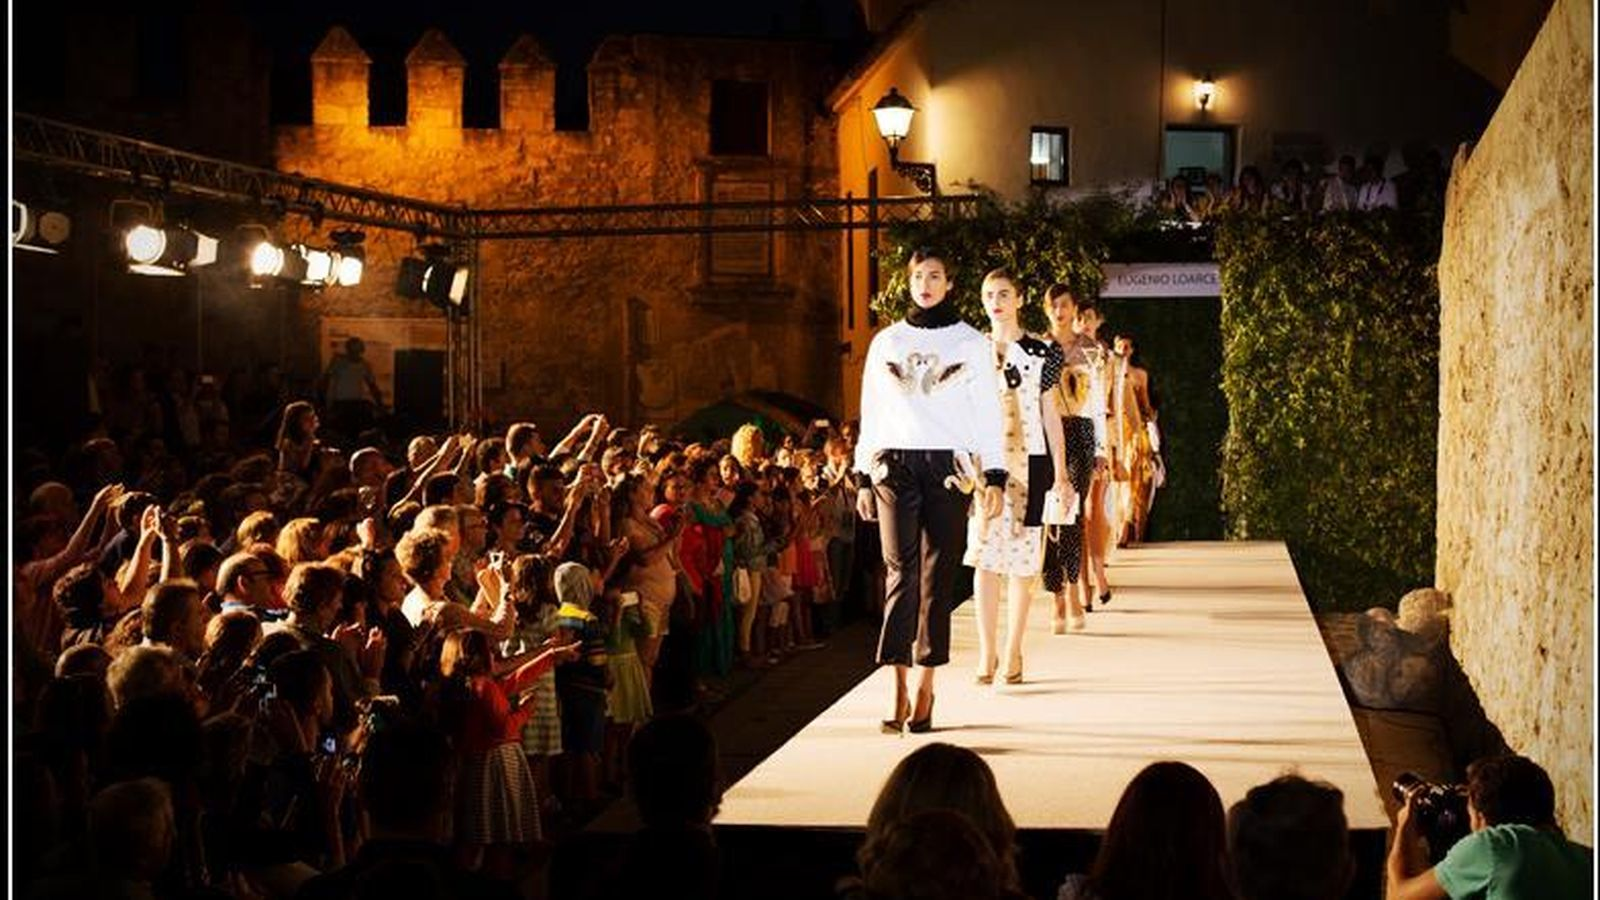 Foto: El Vejer We Fashion 2014 en acción